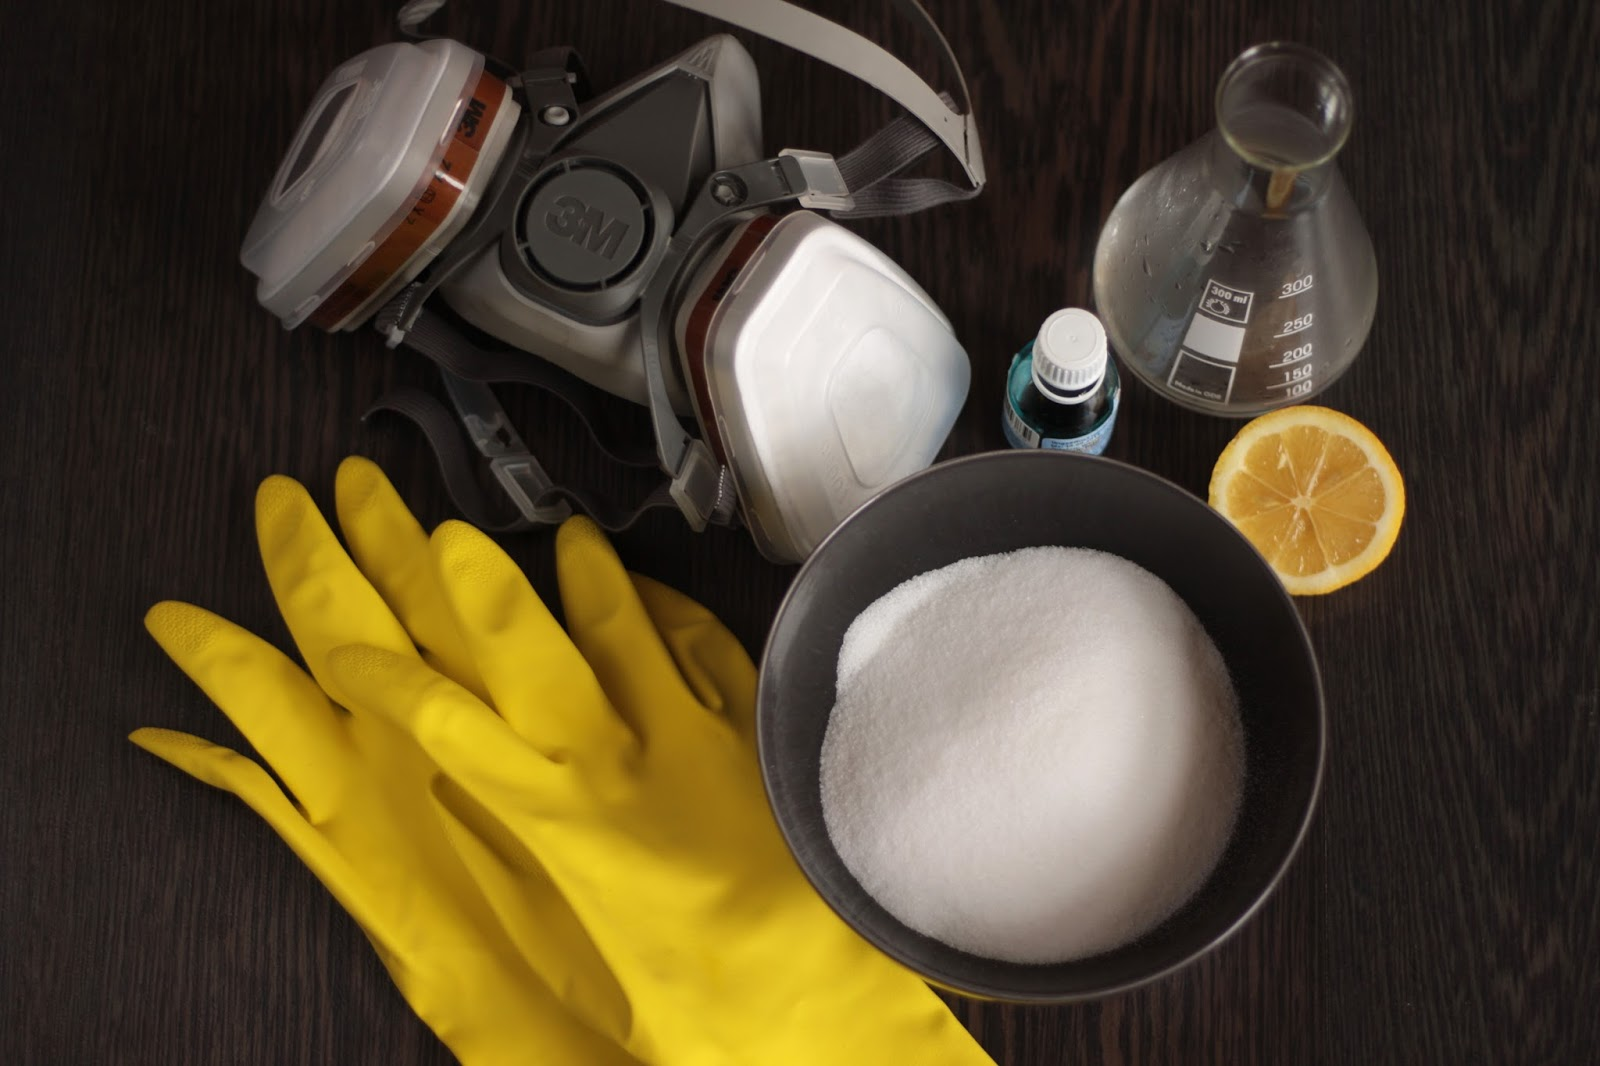 Breaking Bad Blue Crystal Pancake Recipe with Yummy Fluff Cream - Brought to you by Pancake Storie. Try the recipe - but you Better Call Saul if you get caught!